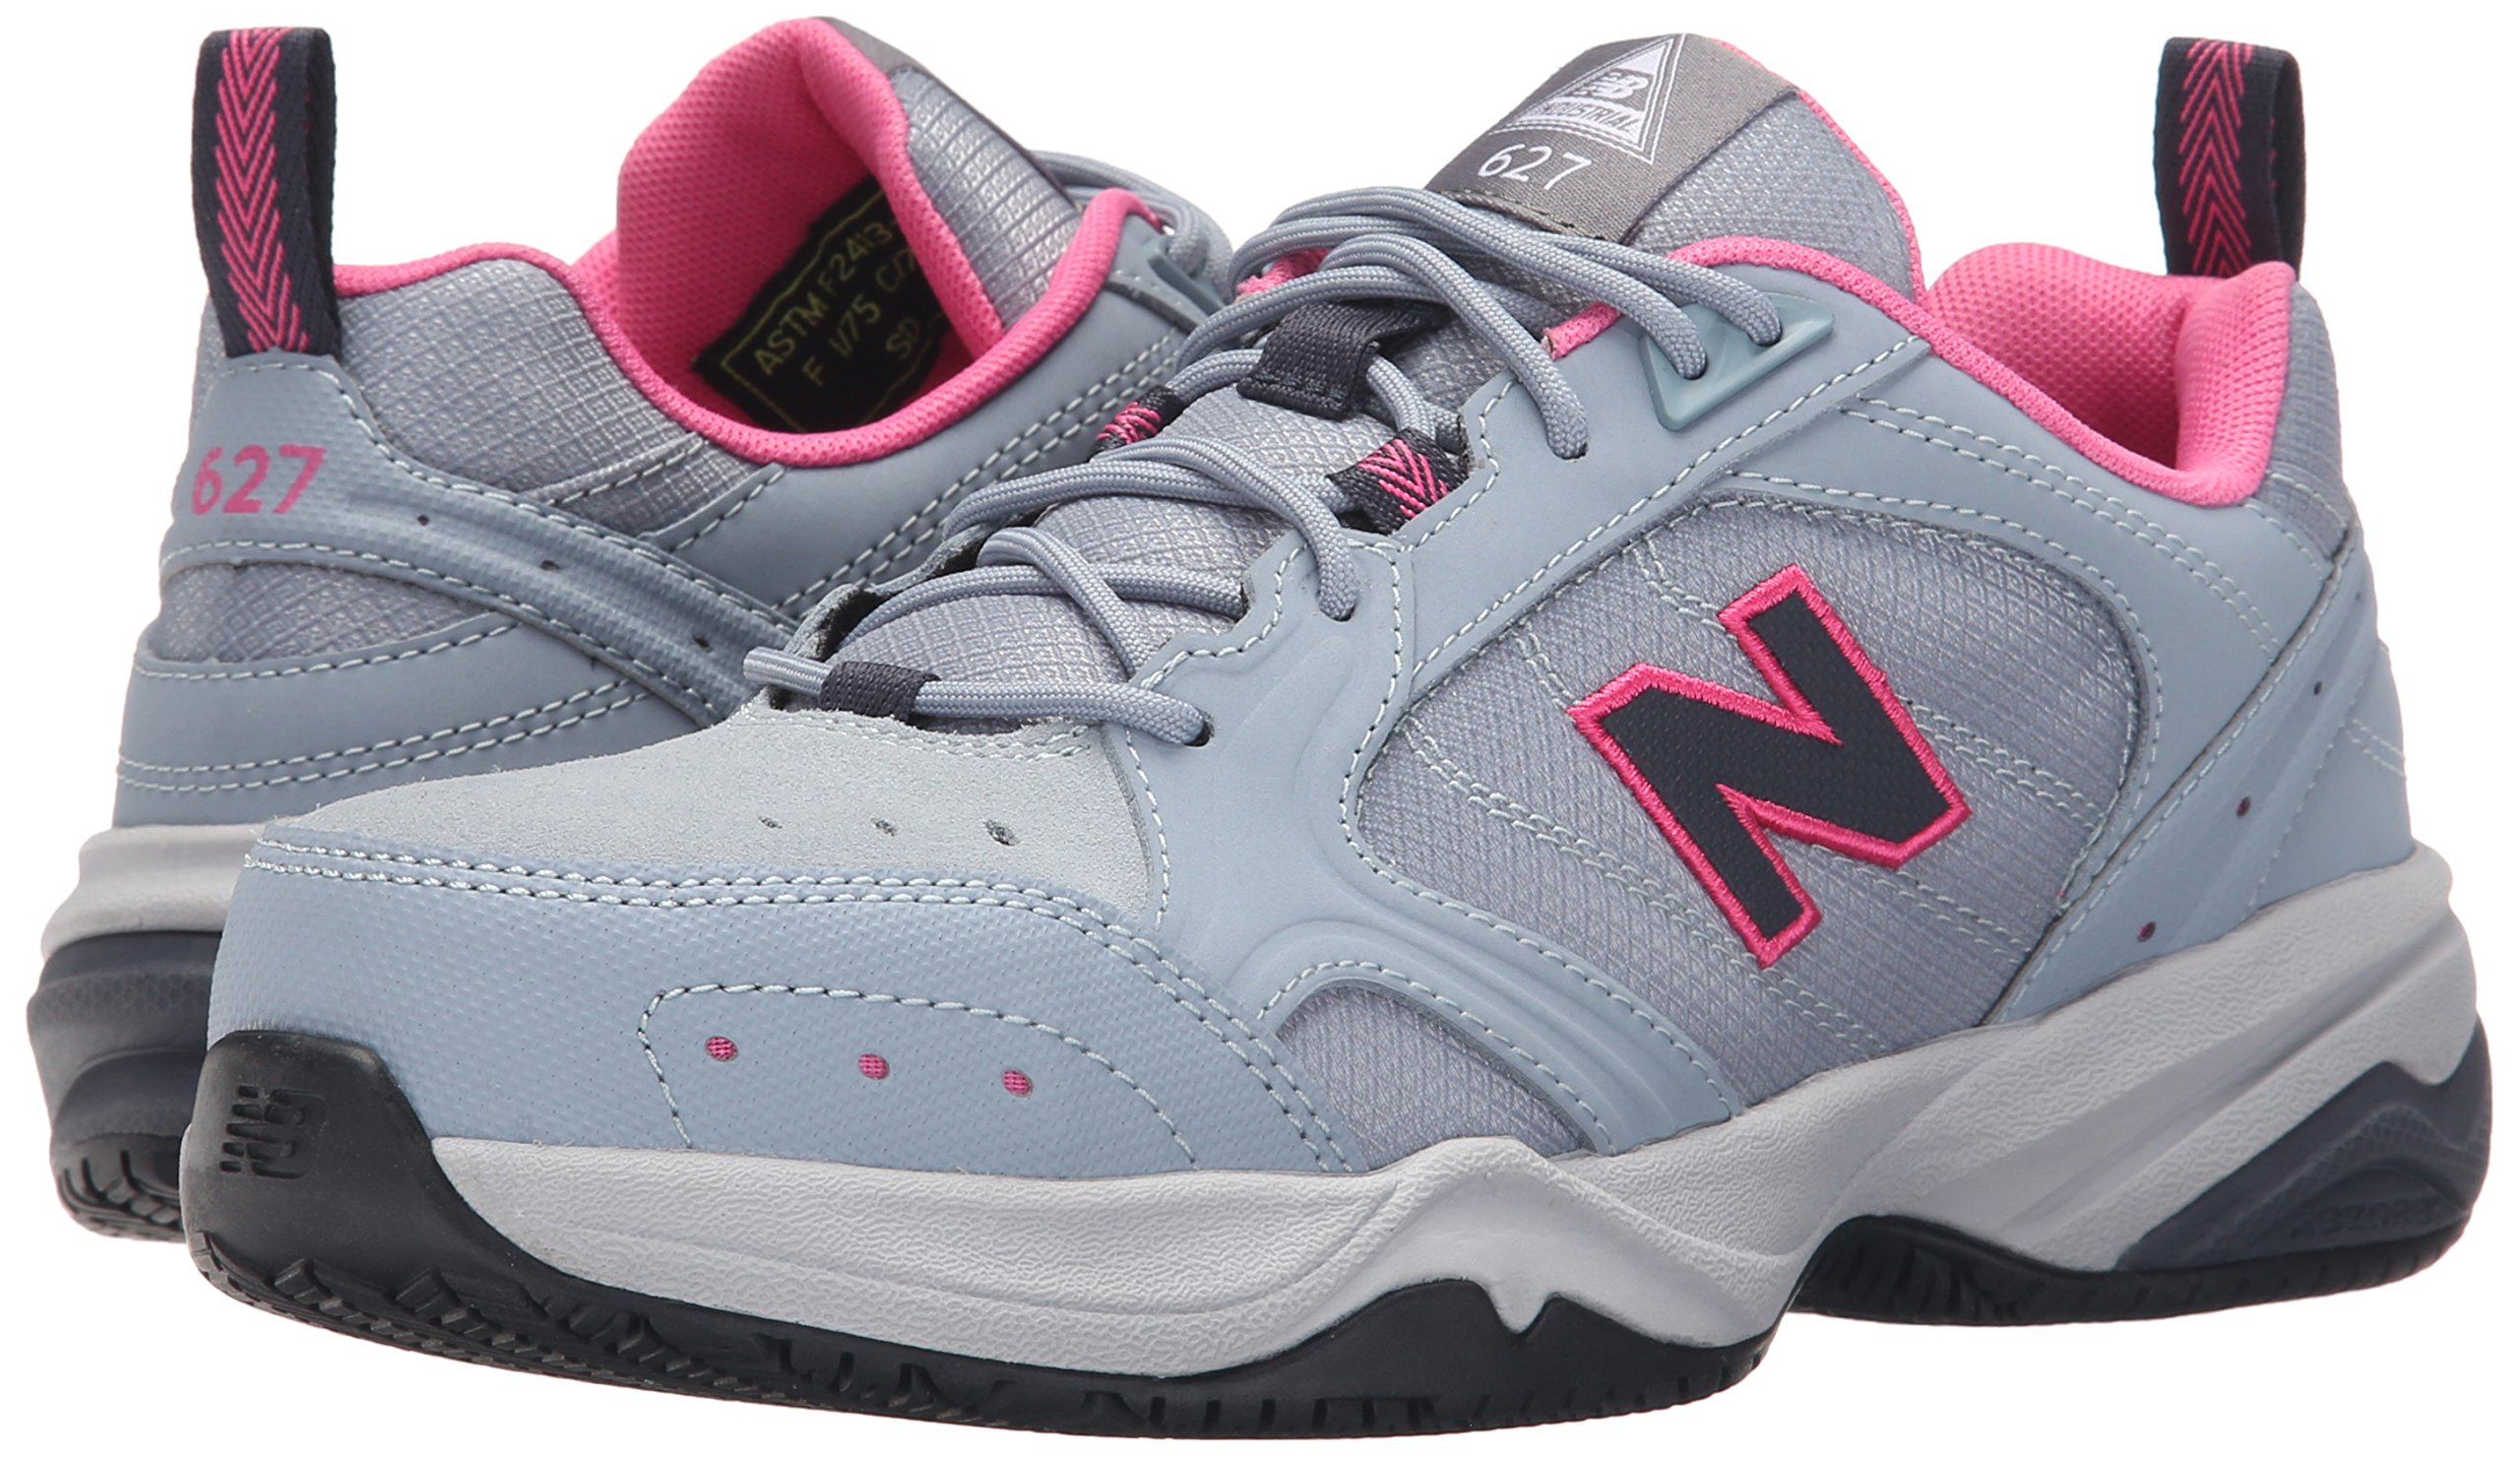 New Balance Women's WID627V1 Steel Toe Training Work Shoe,Light Grey/Pink,8 B US by New Balance (Image #6)